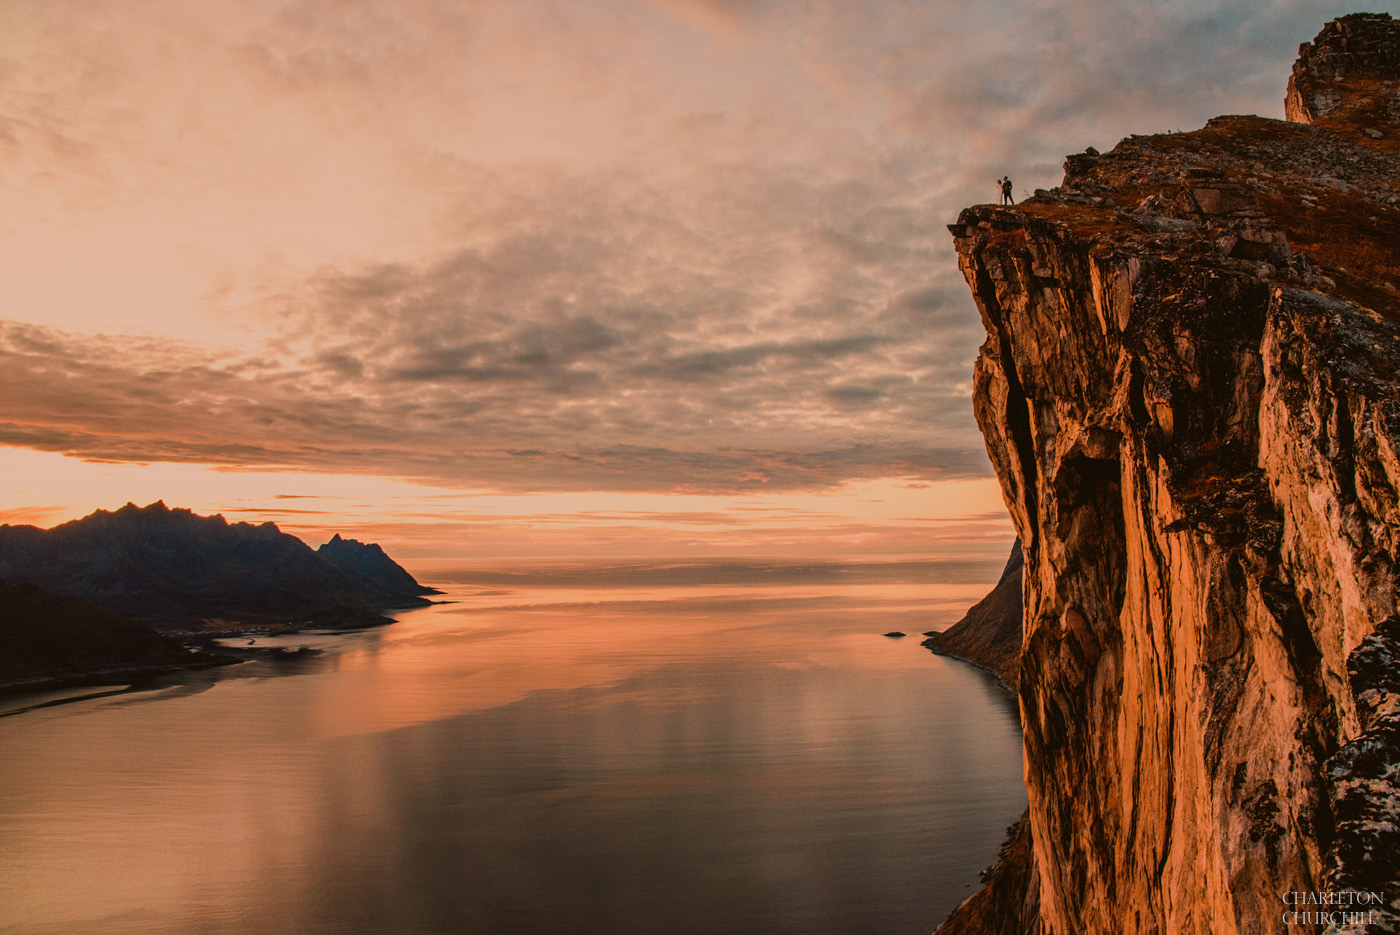 cliff photos of norway by adventure wedding photographer charleton churchill